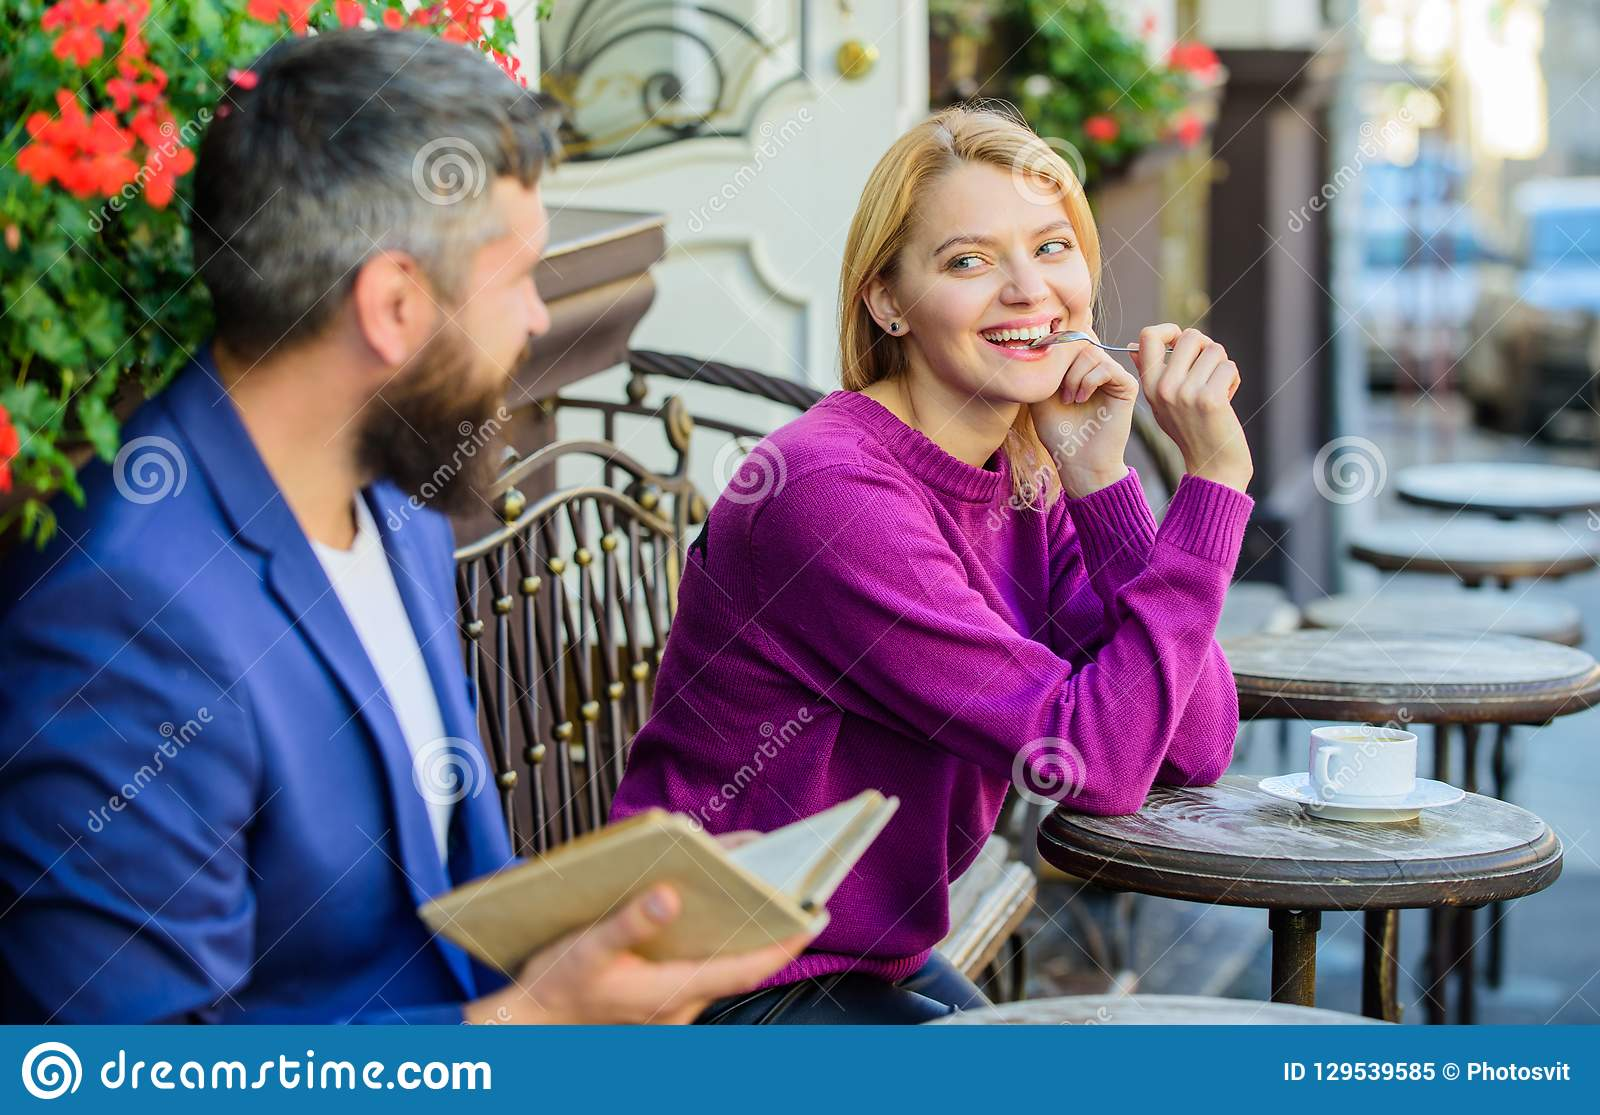 Girl interested what he read. Meeting people with similar interests. Man and woman sit cafe terrace. Literature common